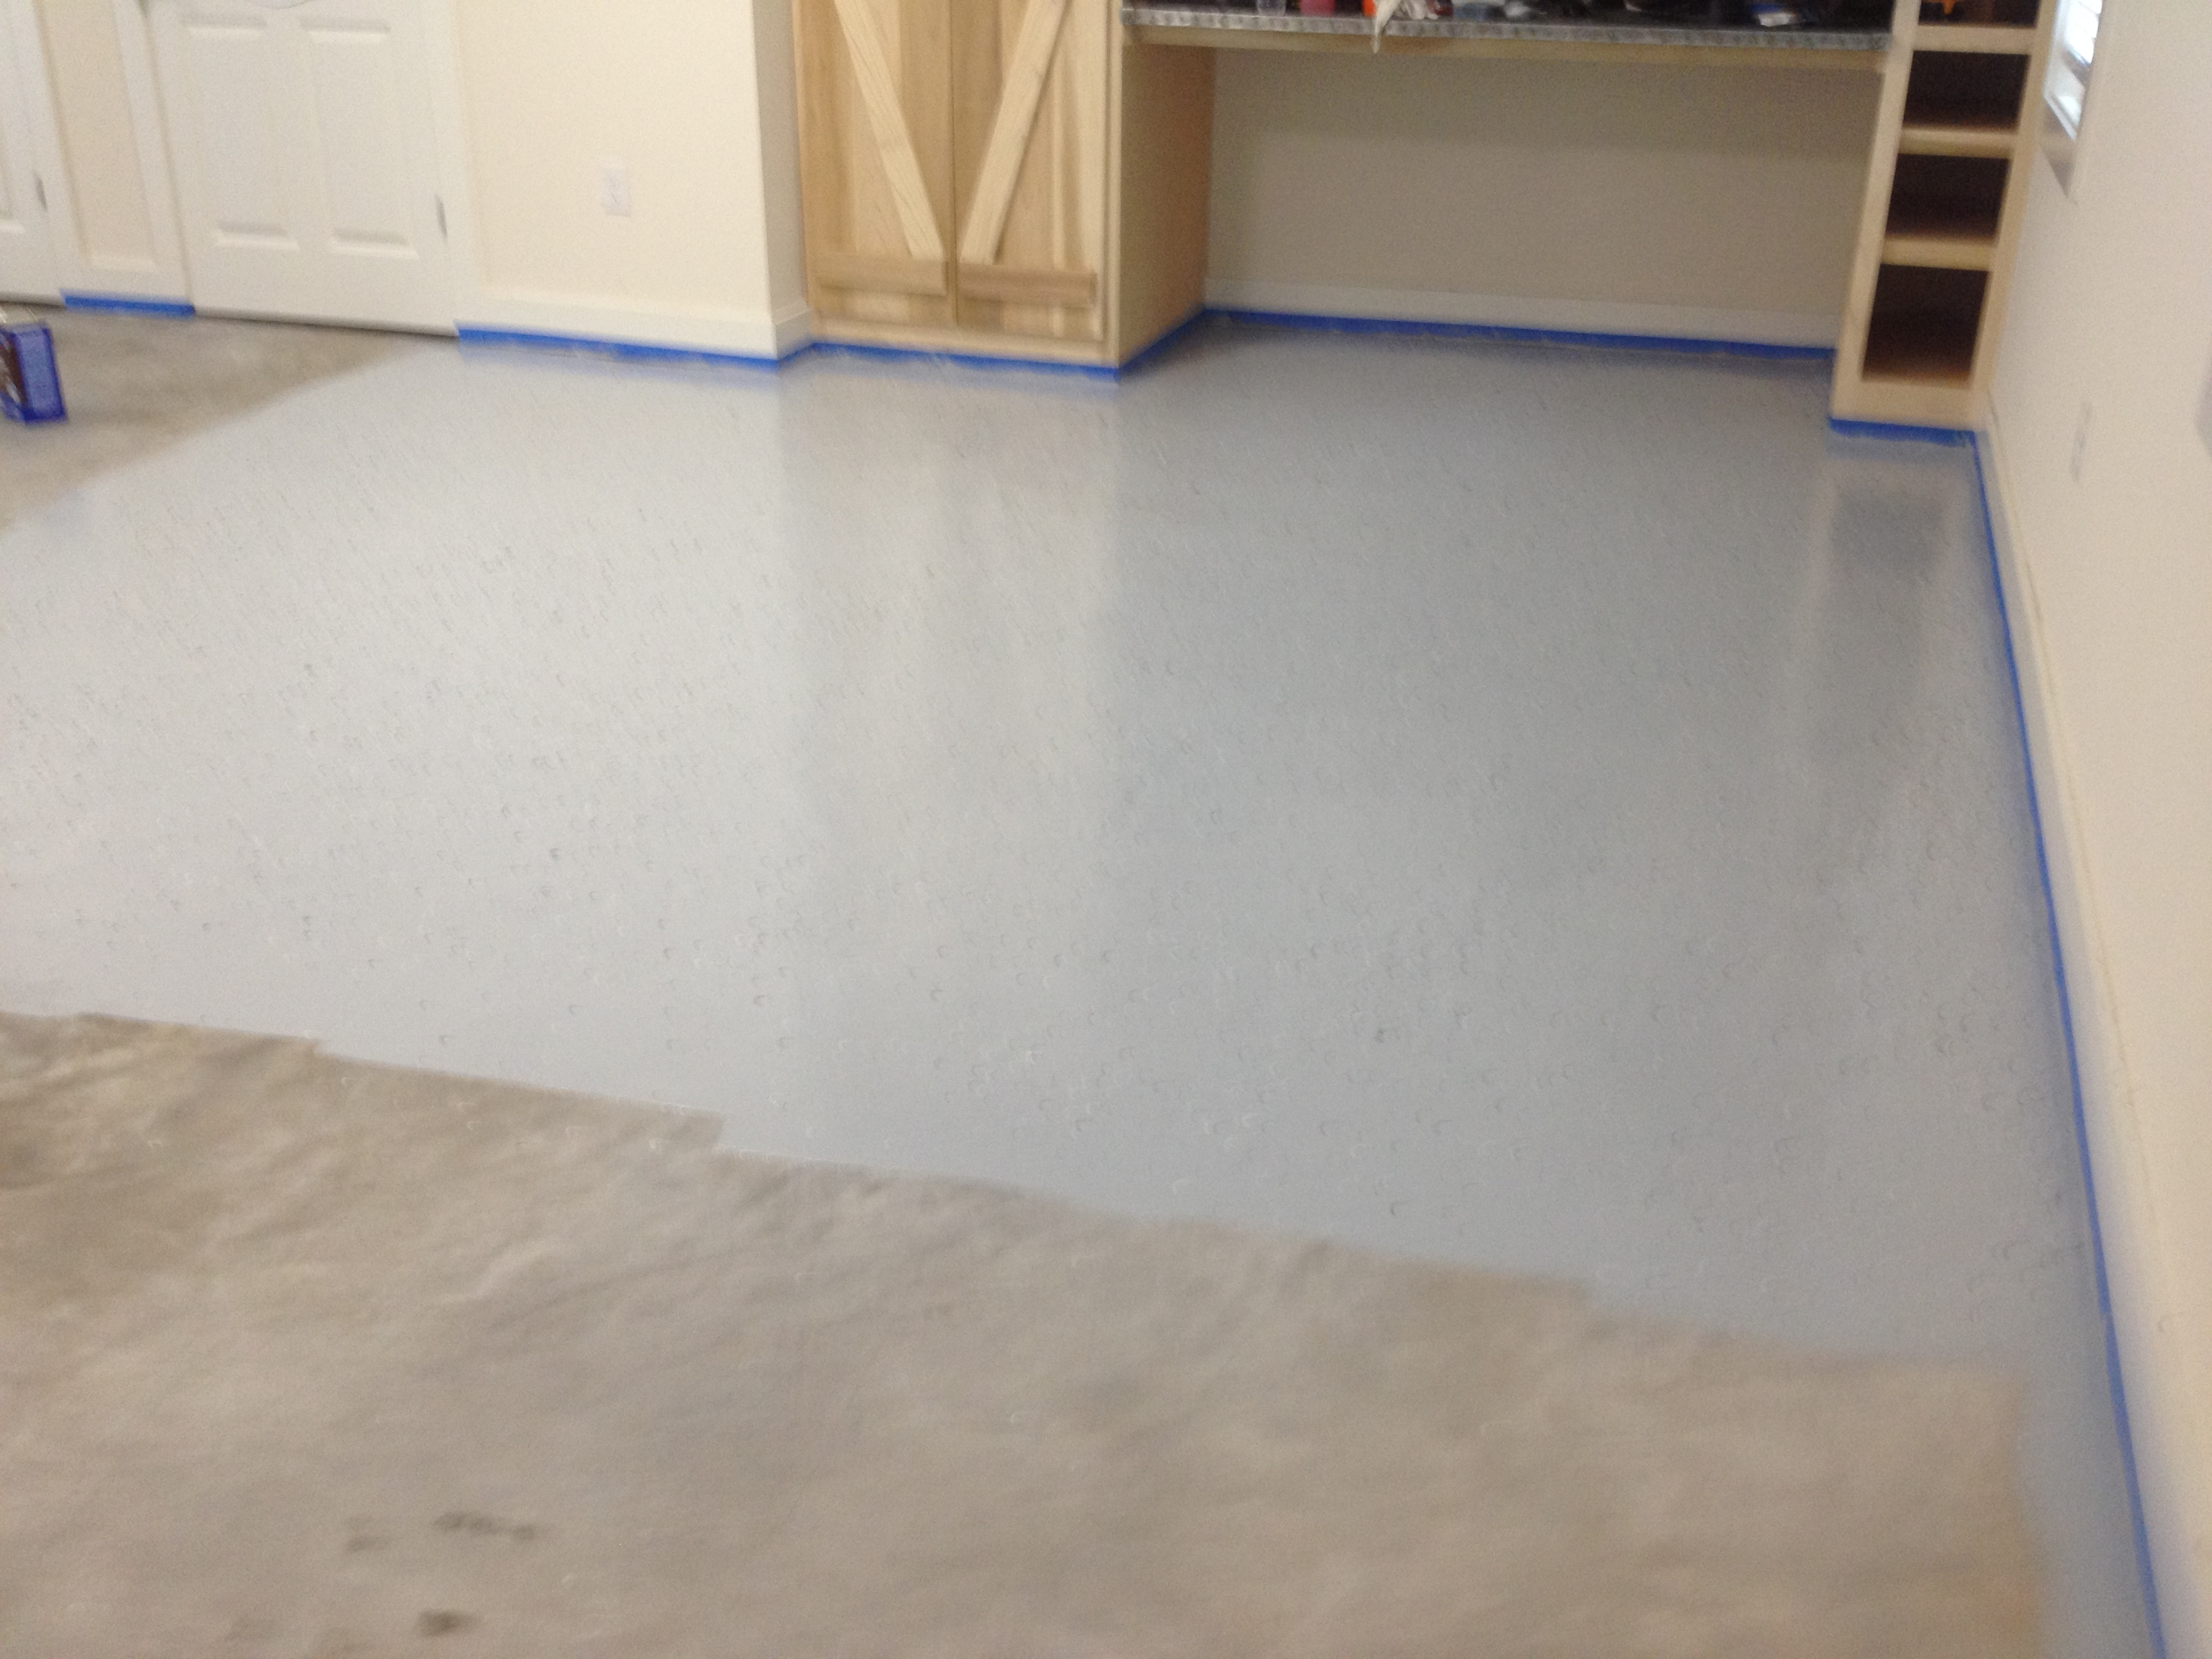 1st layer of epoxy floor covering